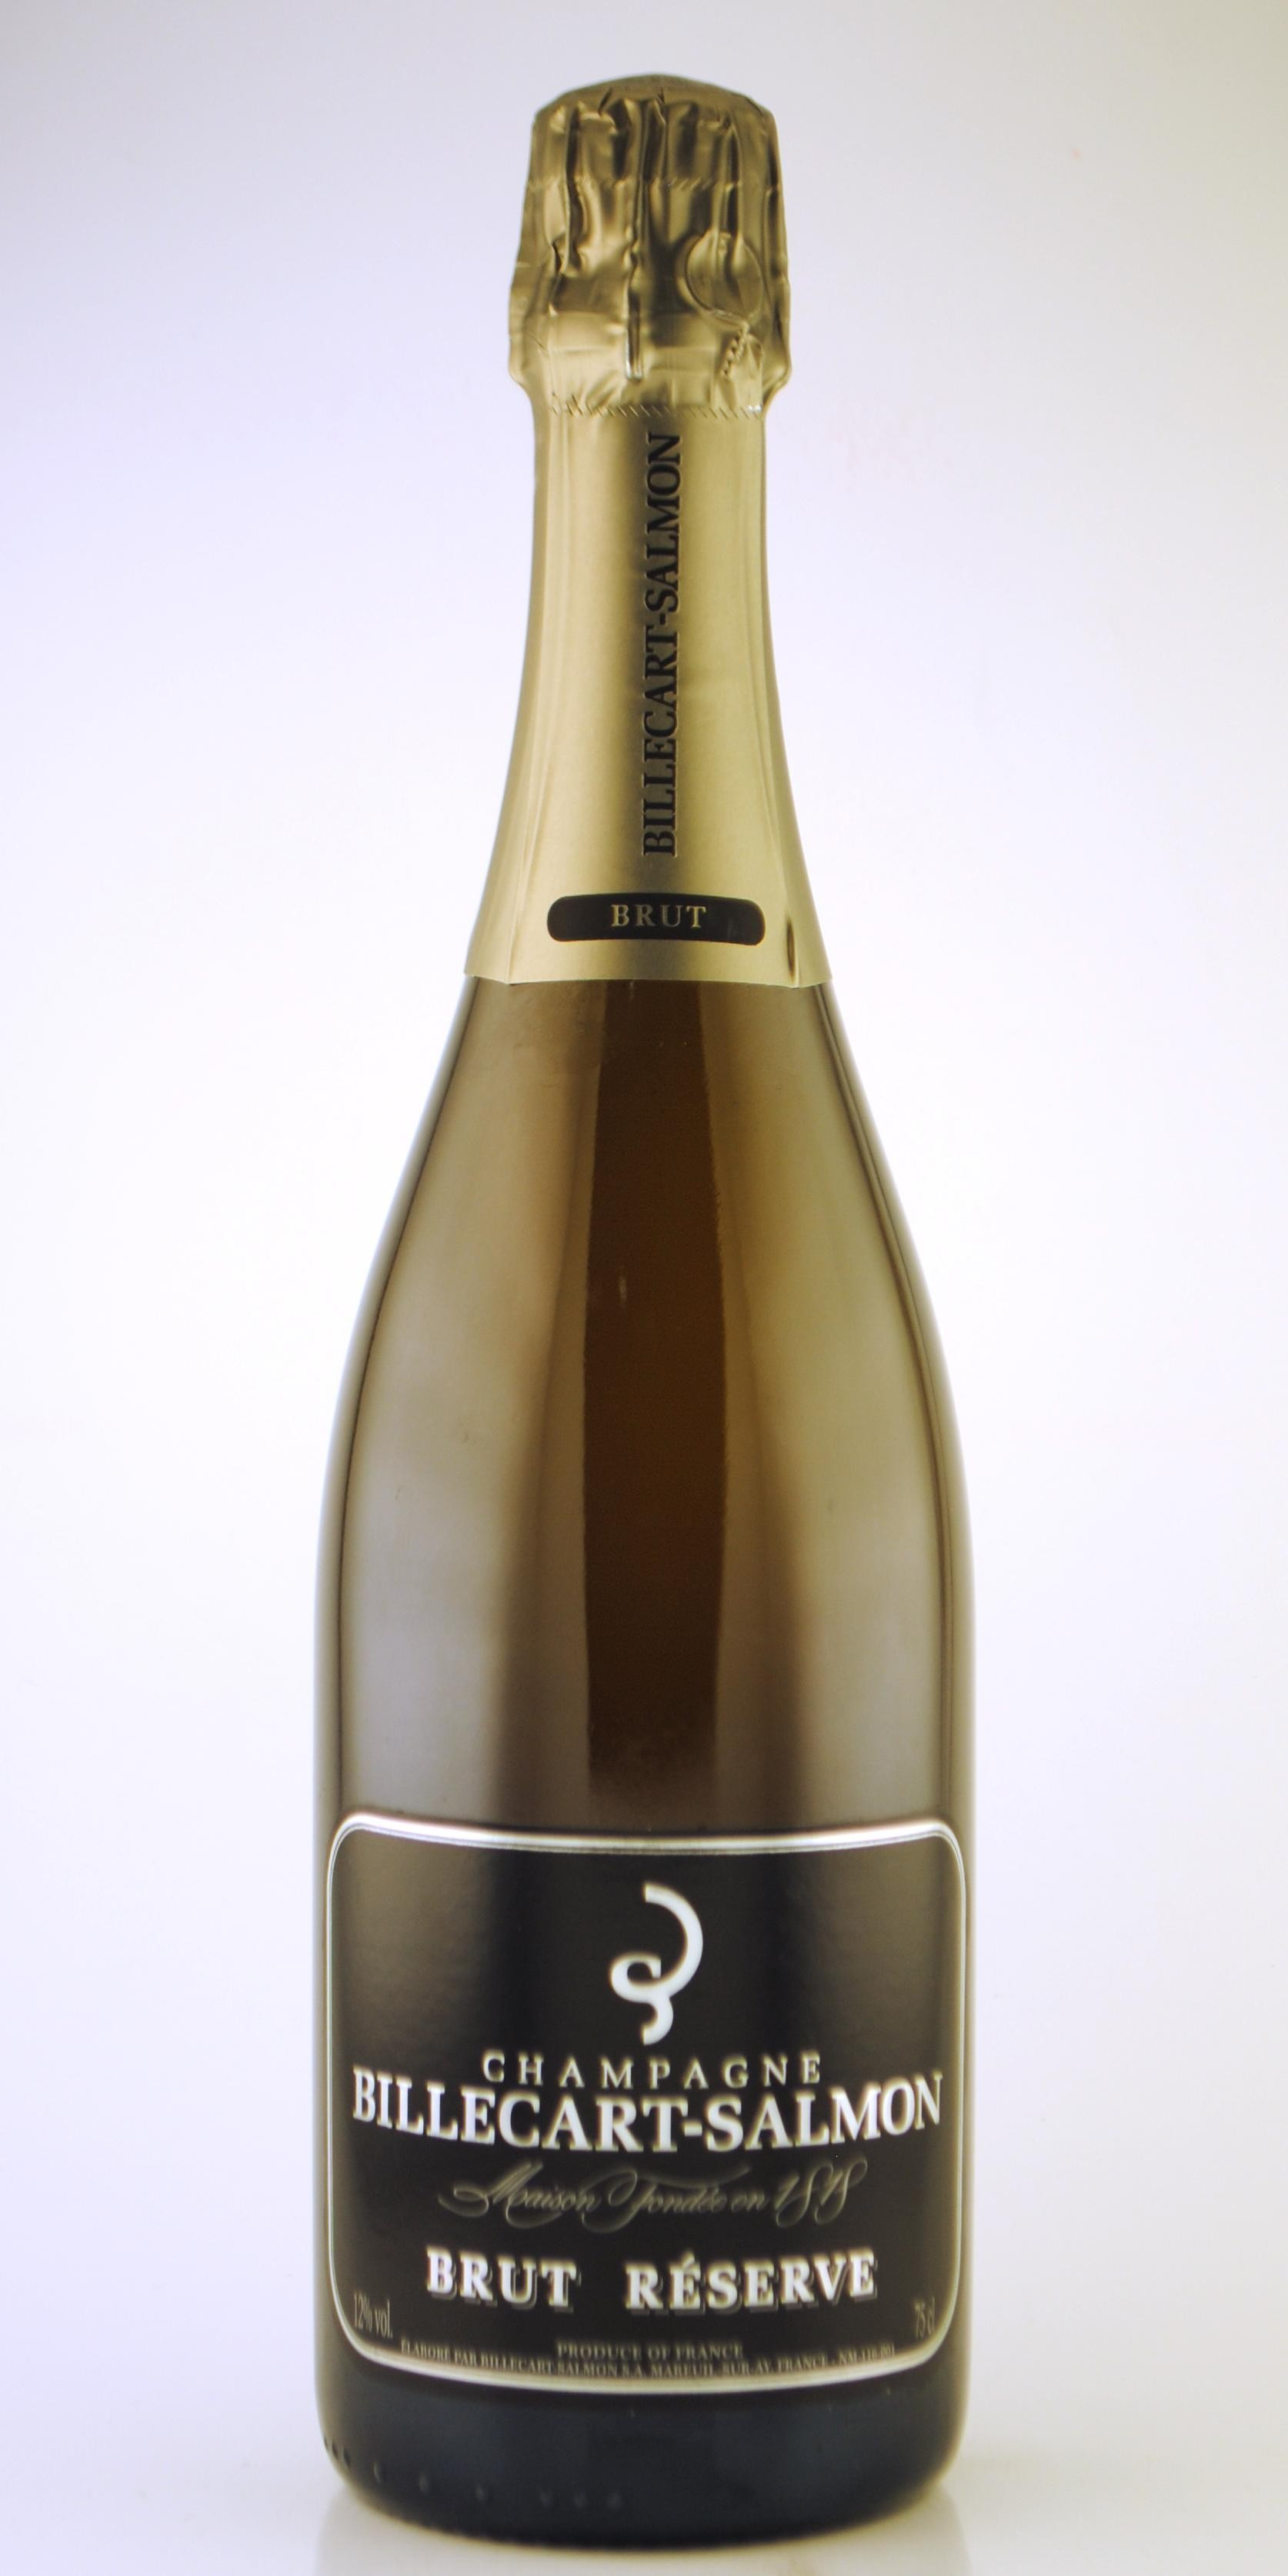 Billecart-Salmon - Brut Réserve